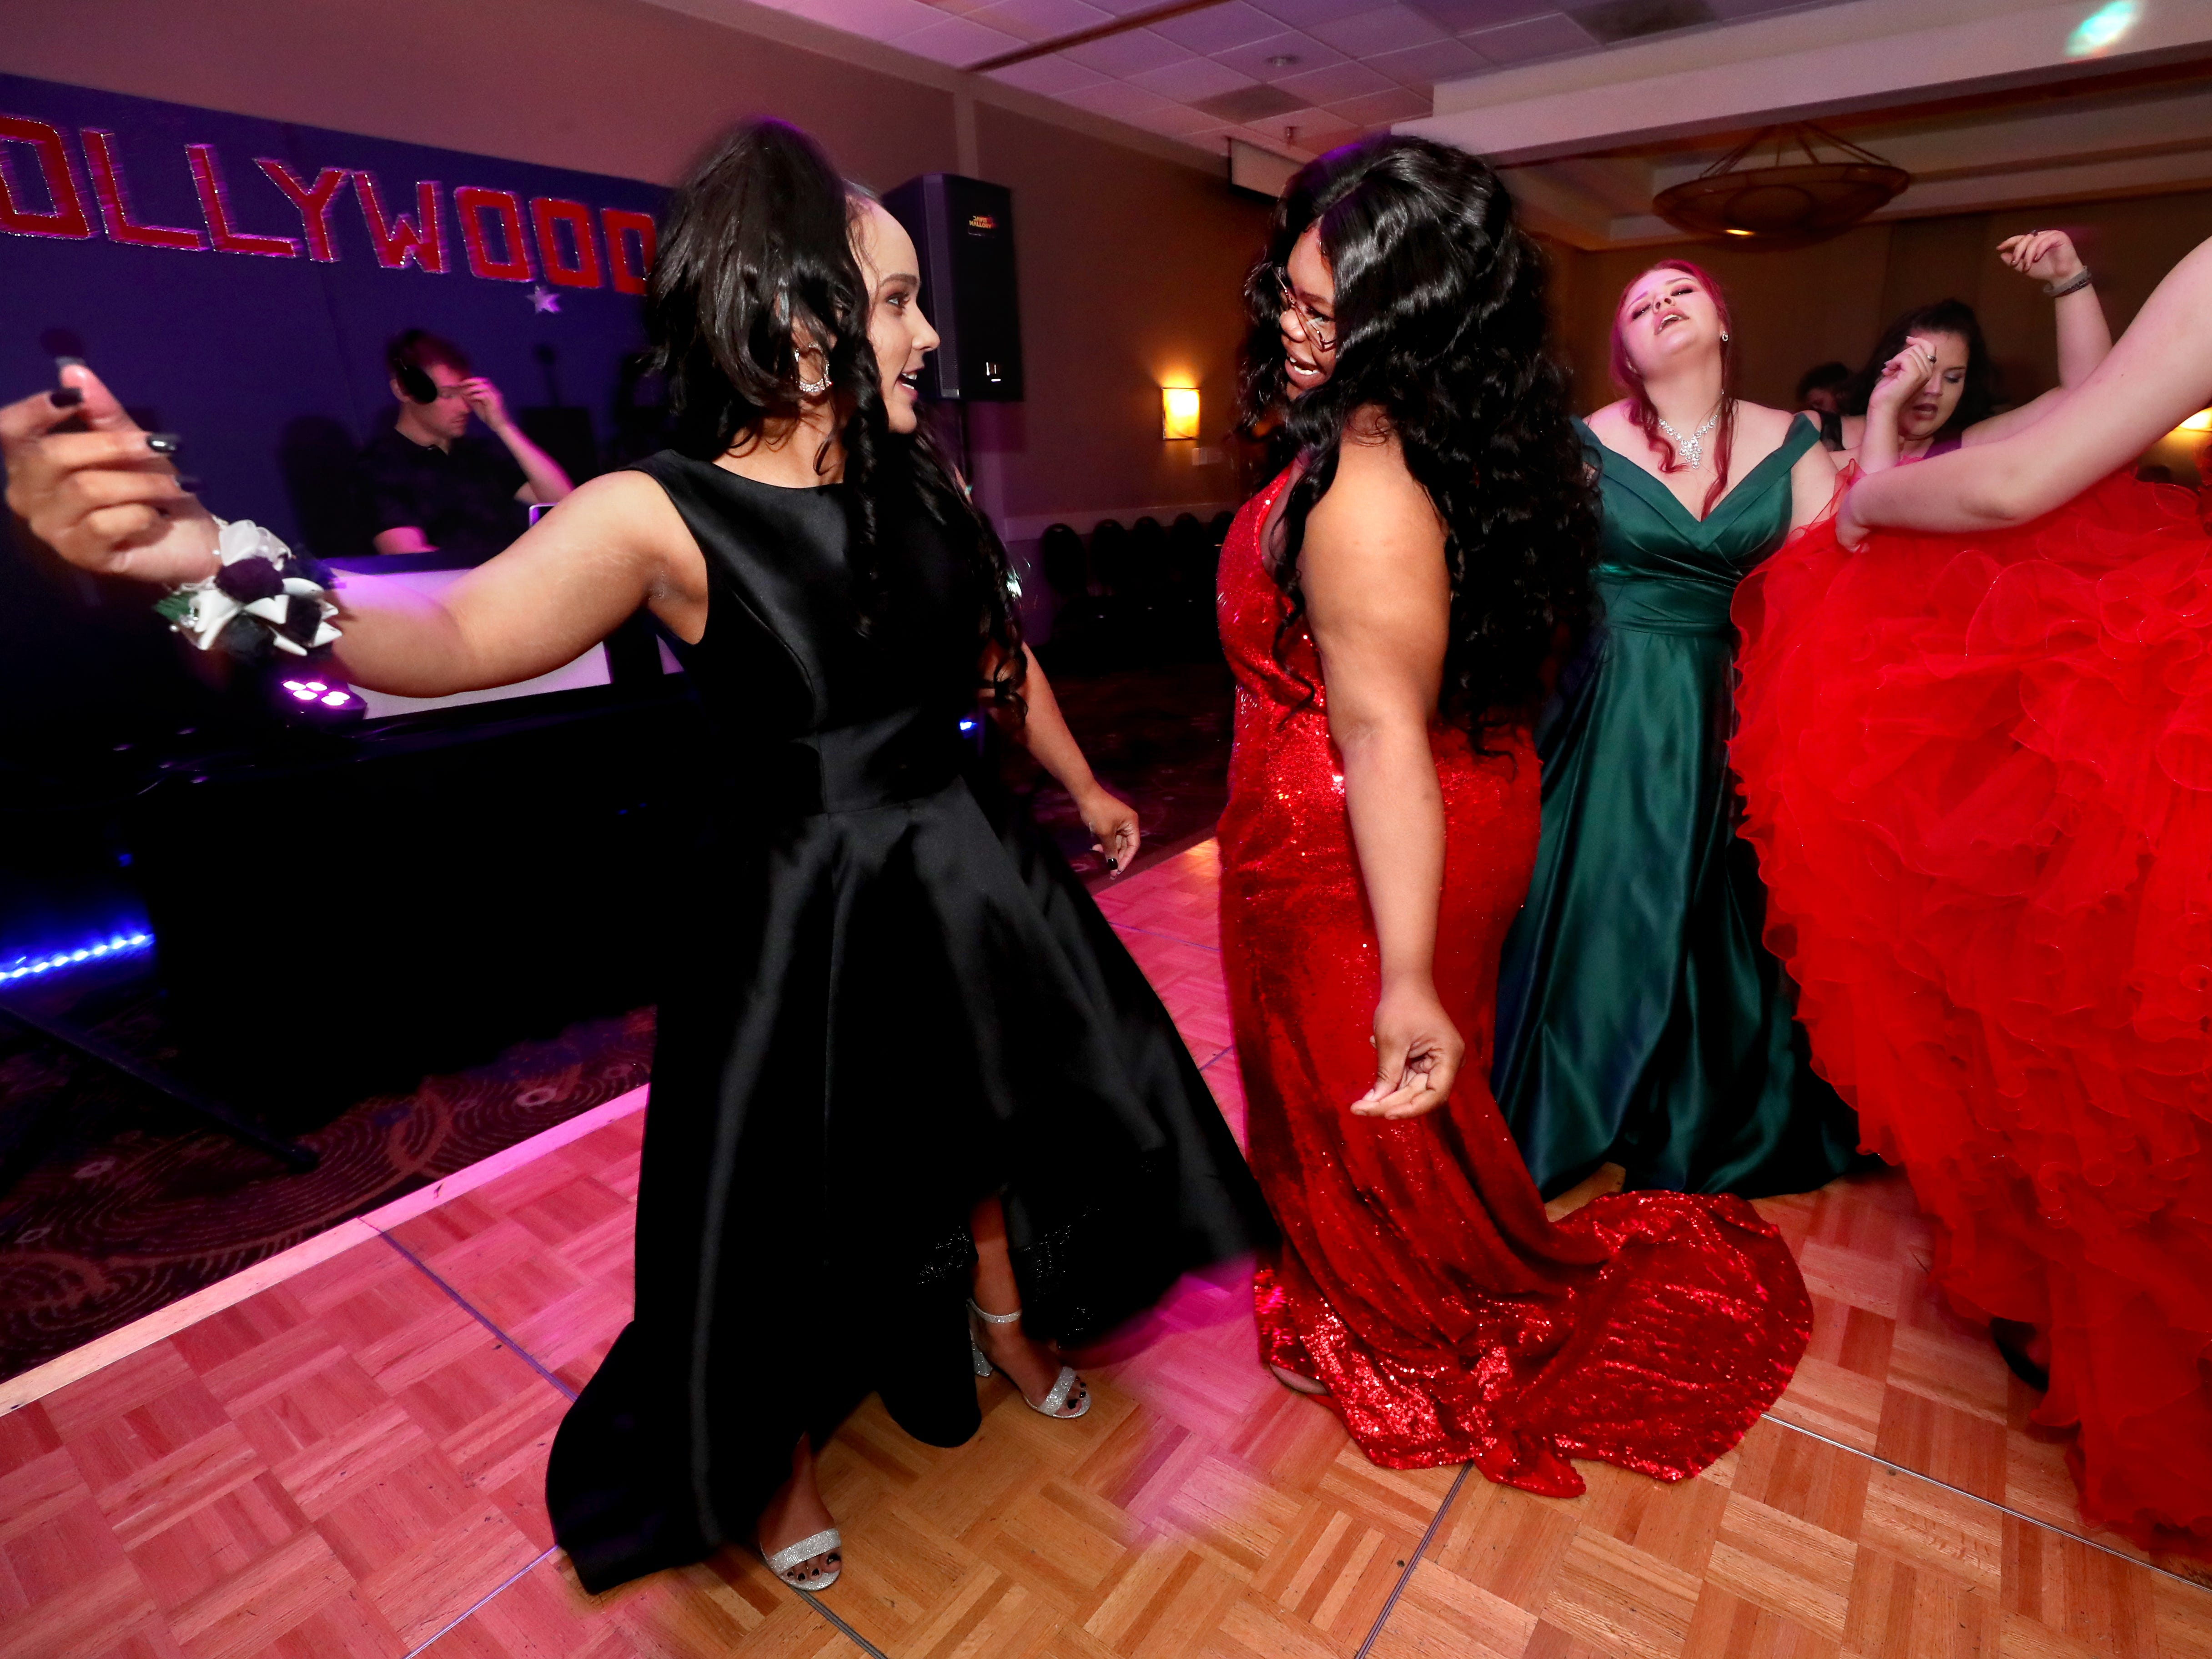 Miracle Knox, left and Jakeyia Alexander, right dance on the dance floor at Holloway's prom at the DoubleTree on Thursday April 18, 2019.